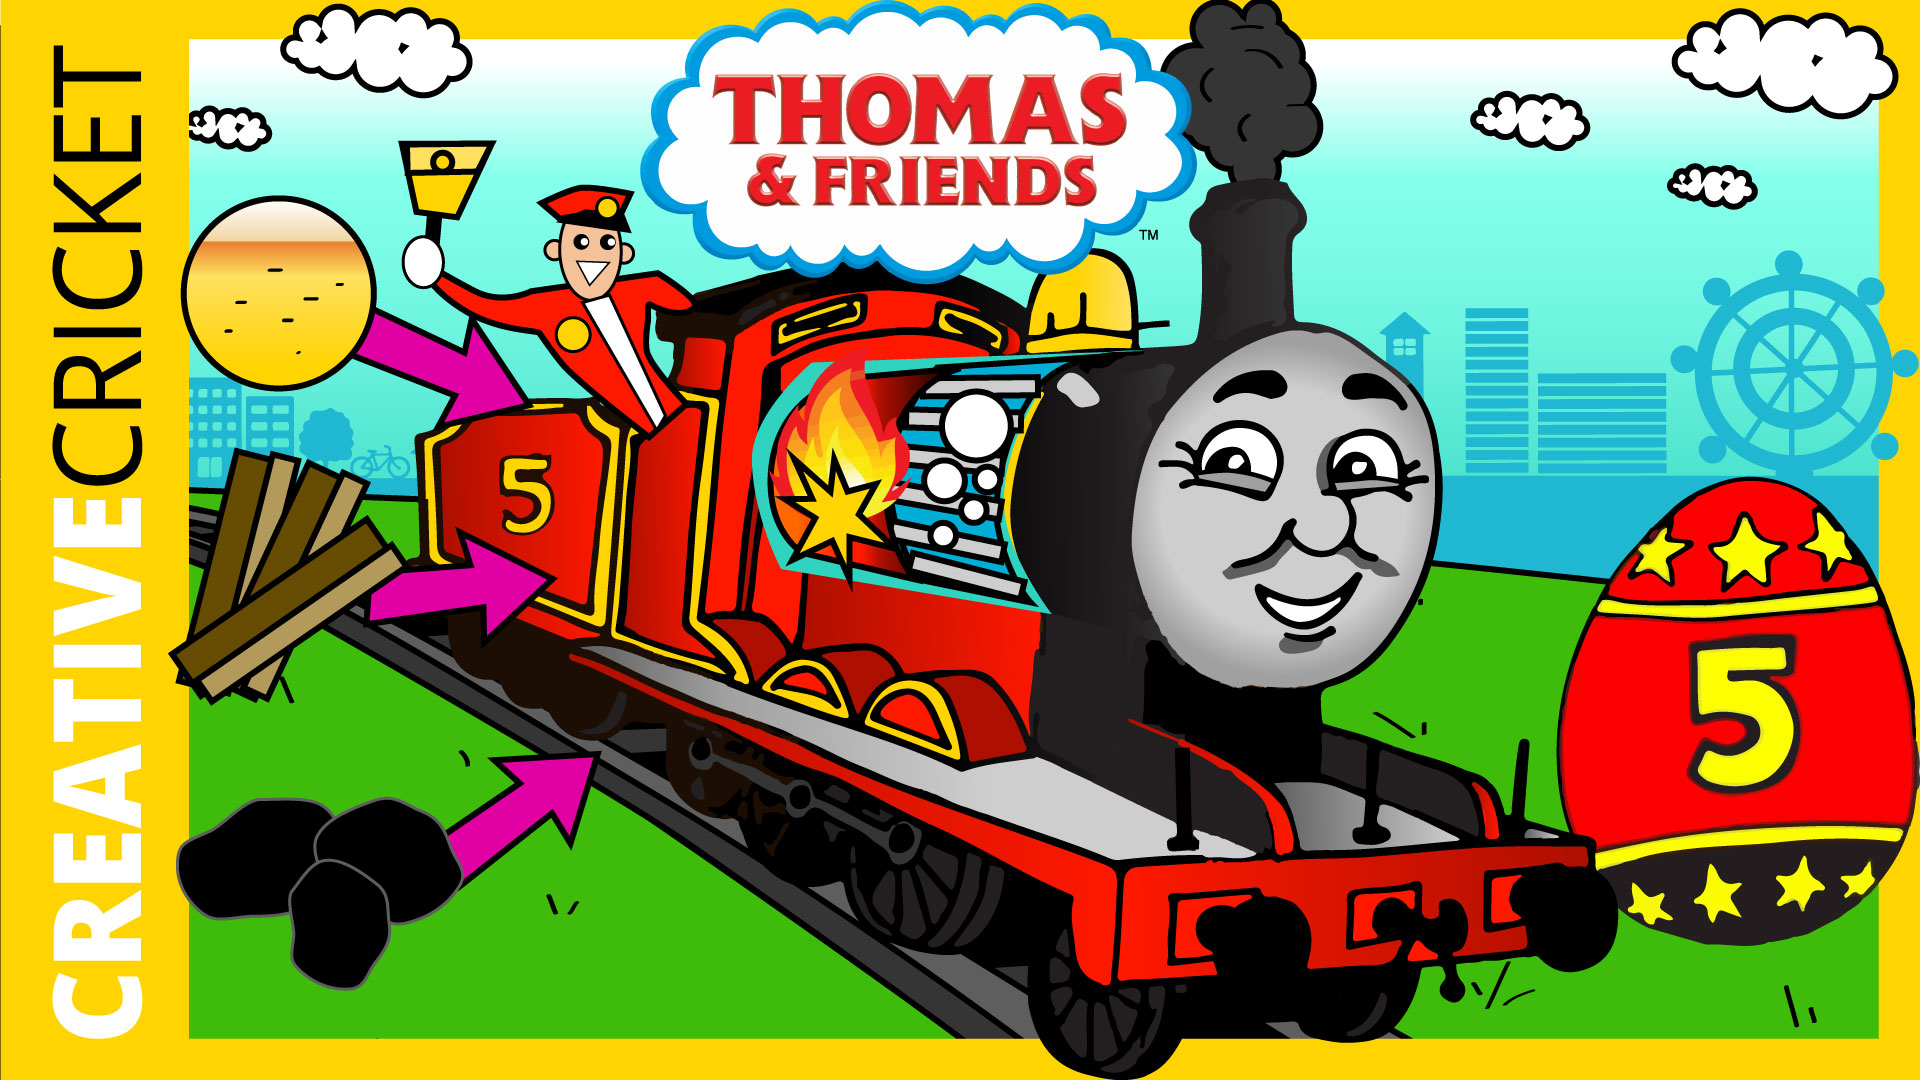 Jump to Thomas and Friends Adventures with James